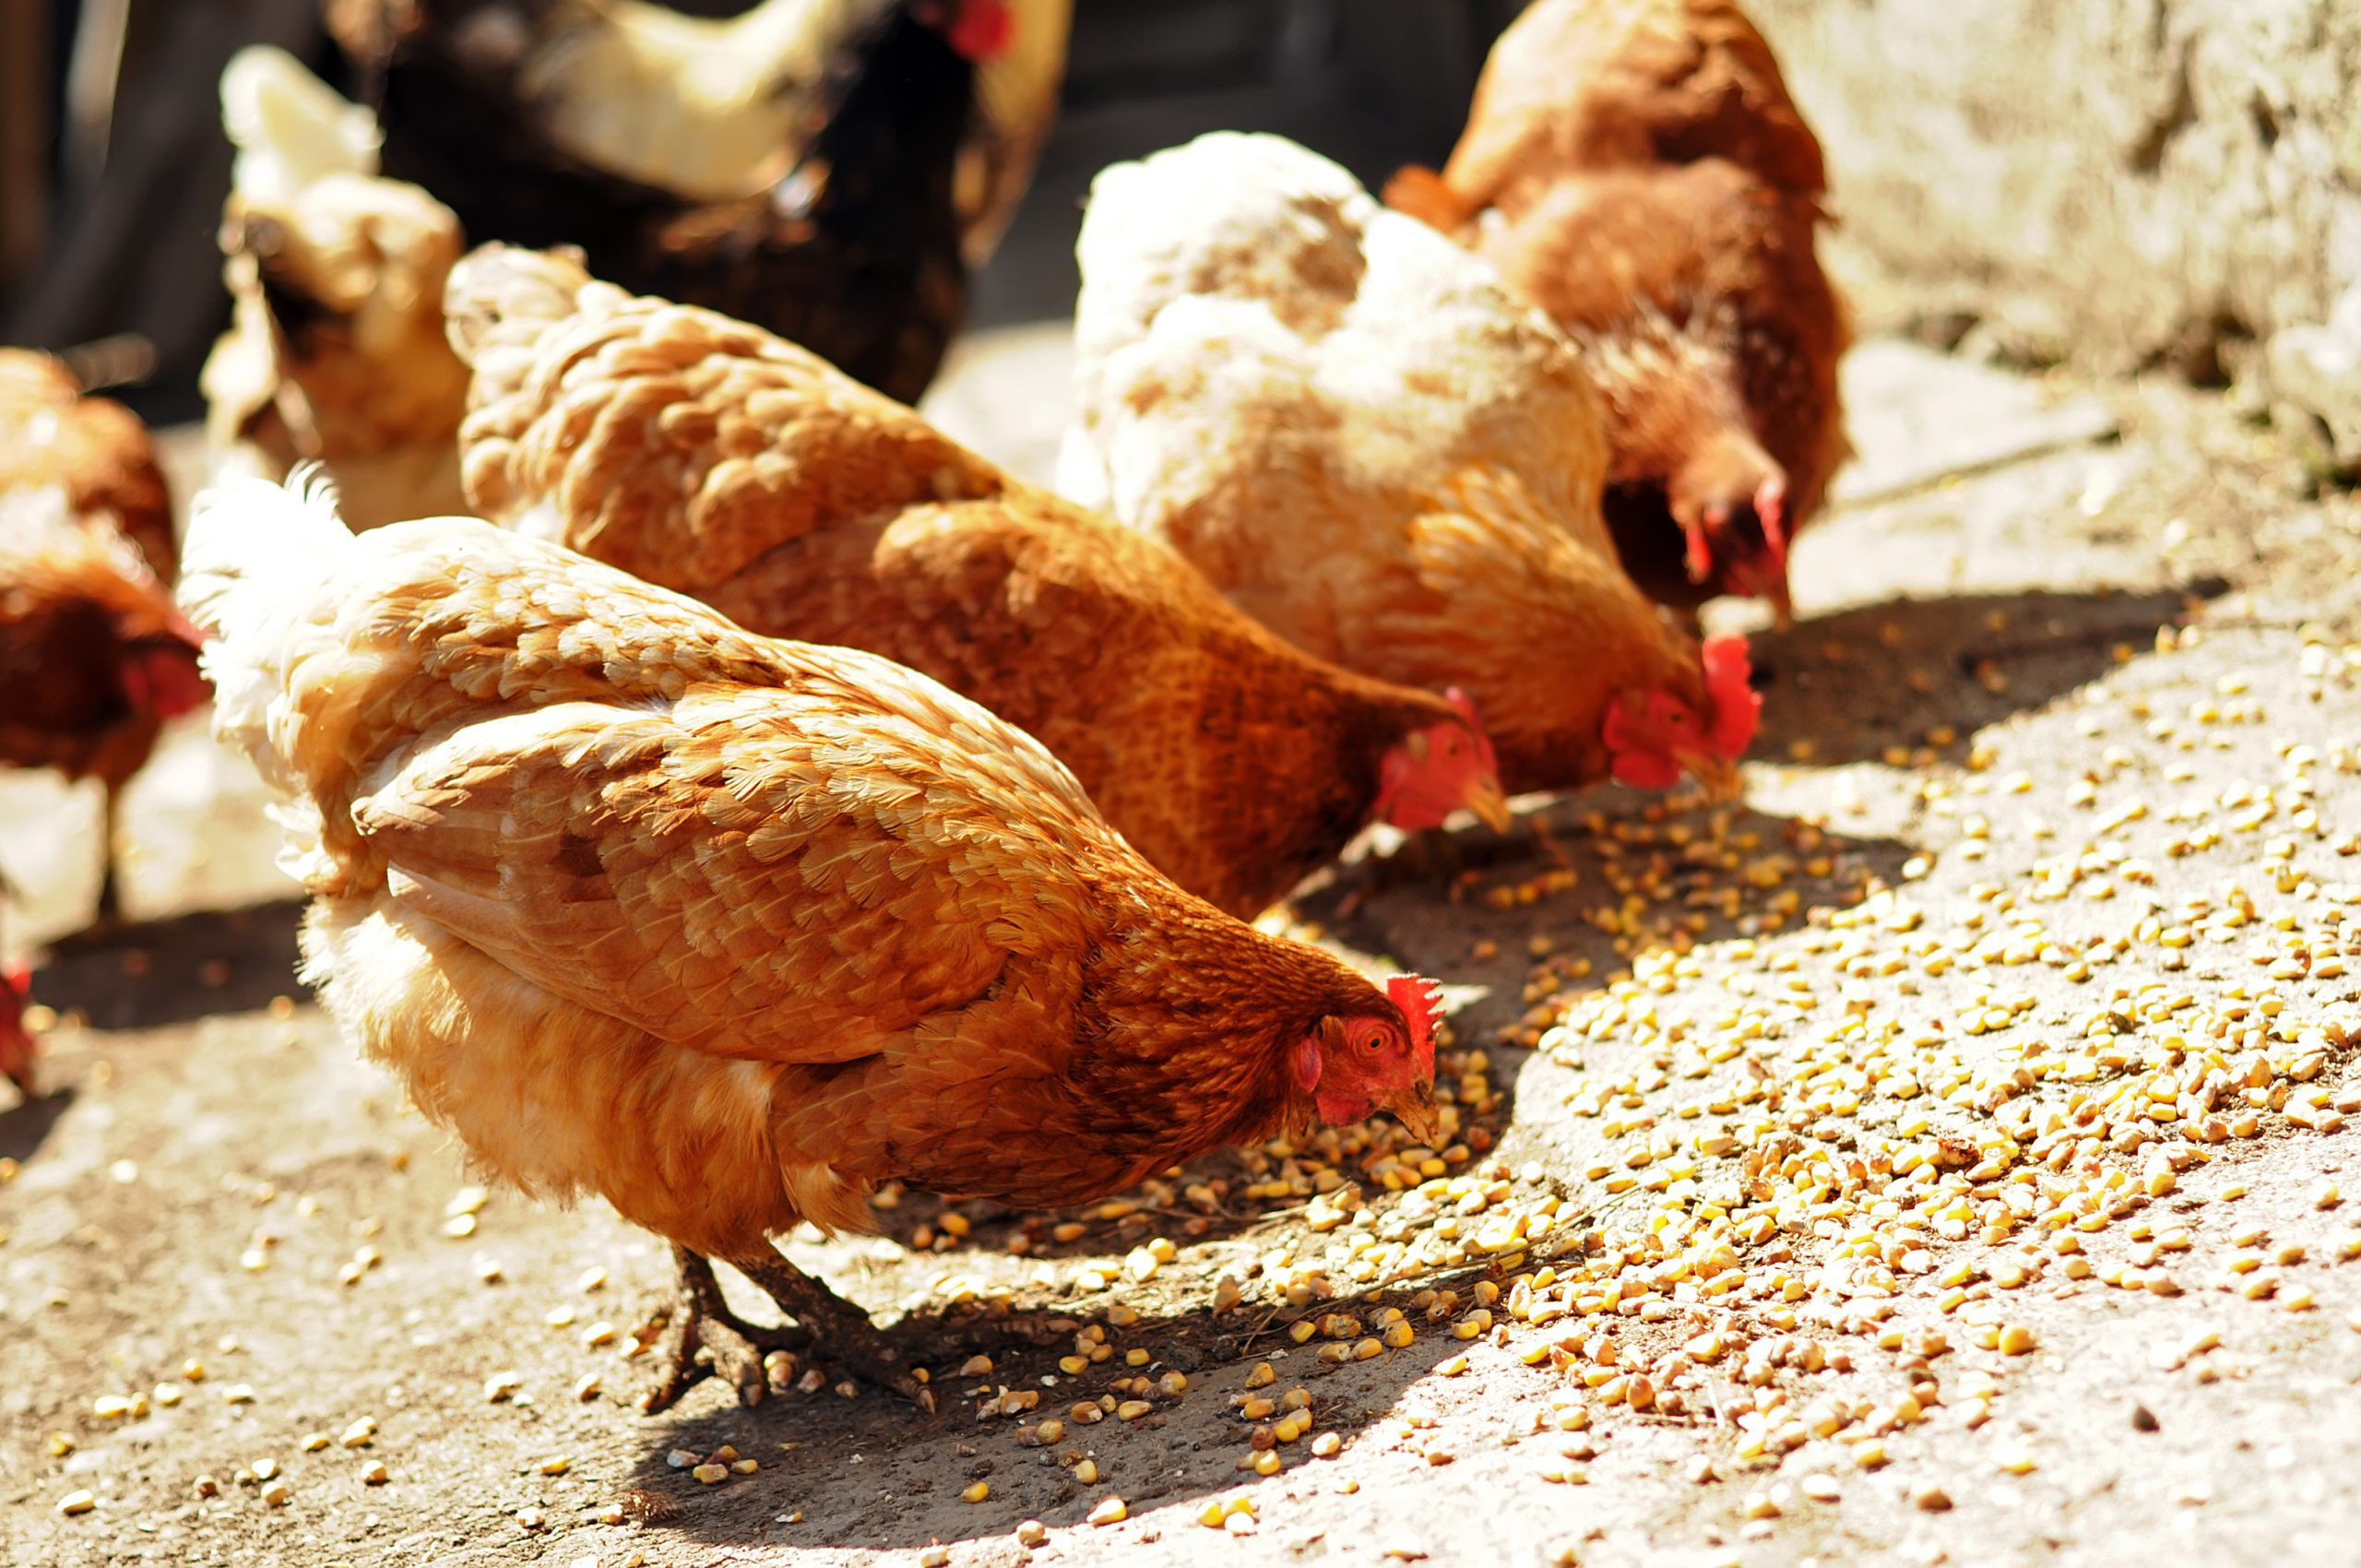 Four chickens eating food